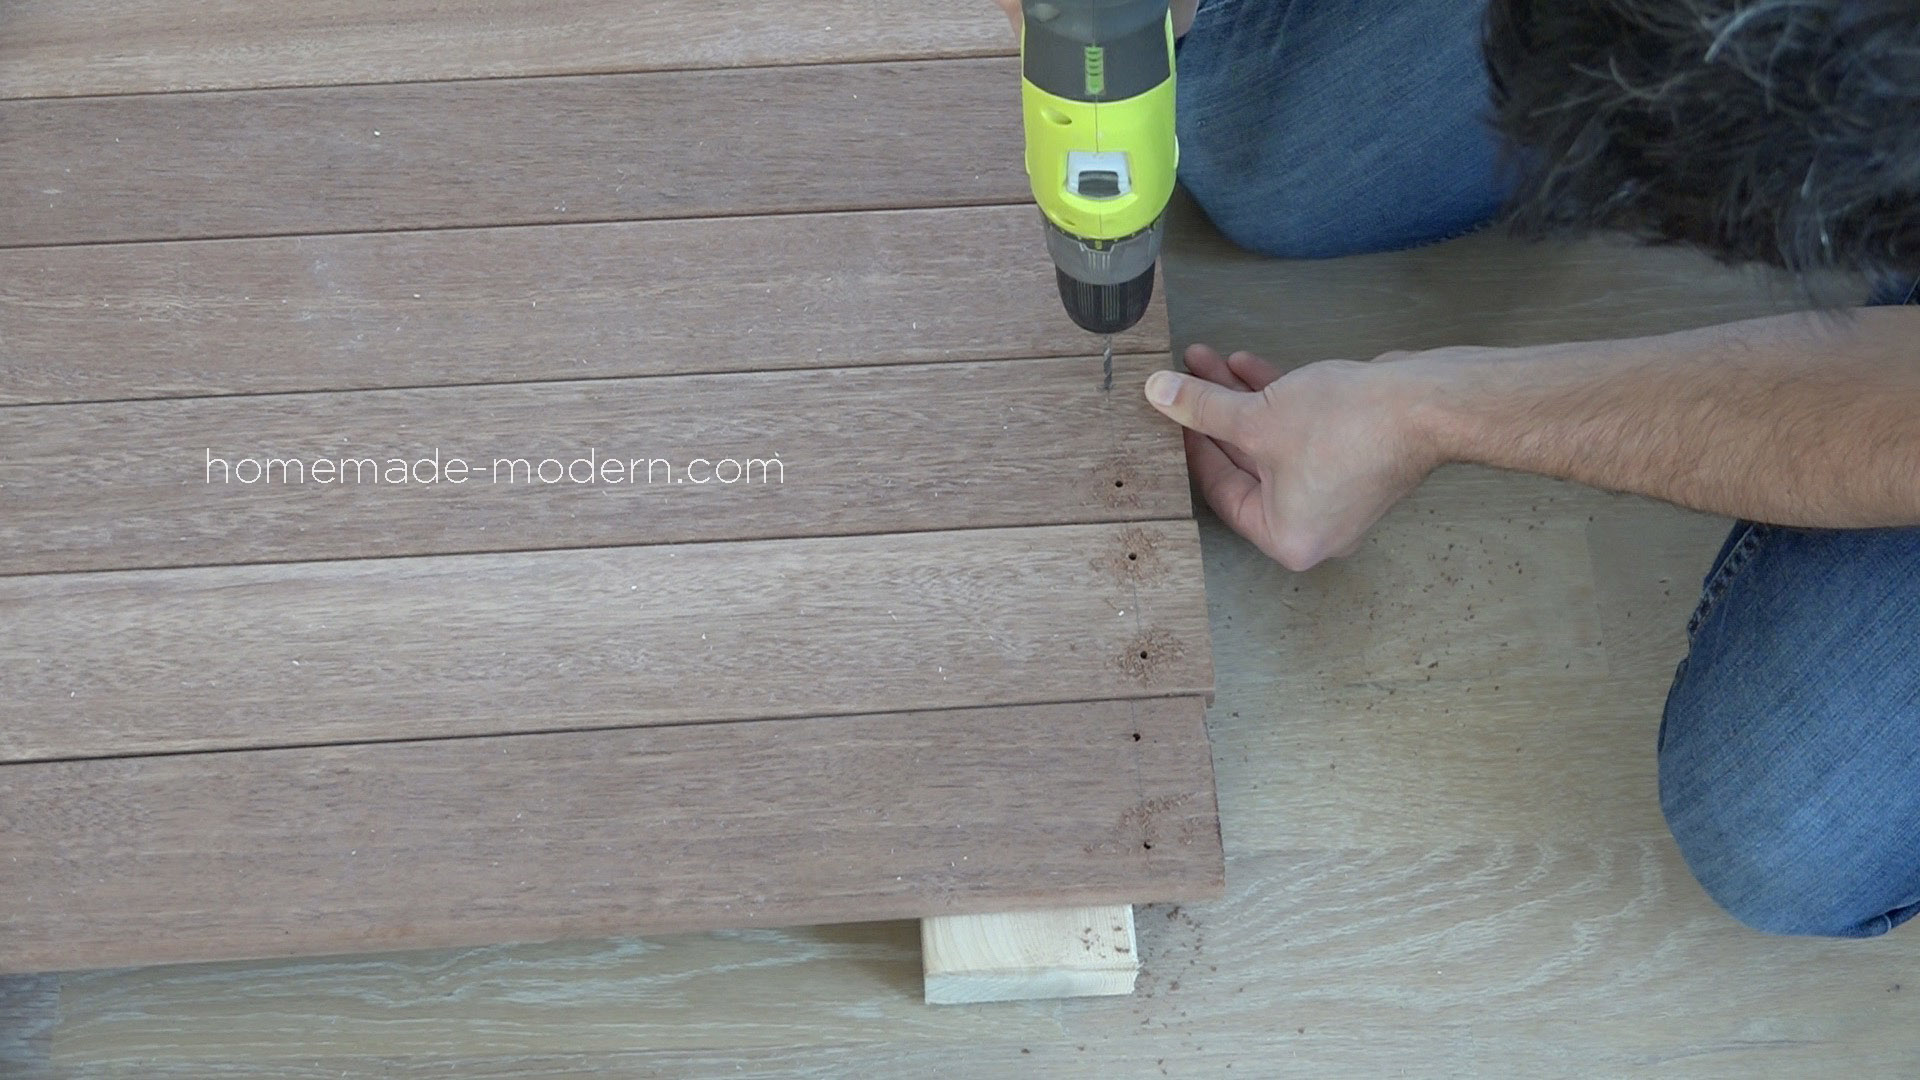 This DIY Outdoor Dining Table is made from painted 2x4s and hardwood deck boards. All the materials can be found at Home Depot. Full instructions can be found at HomeMade-Modern.com